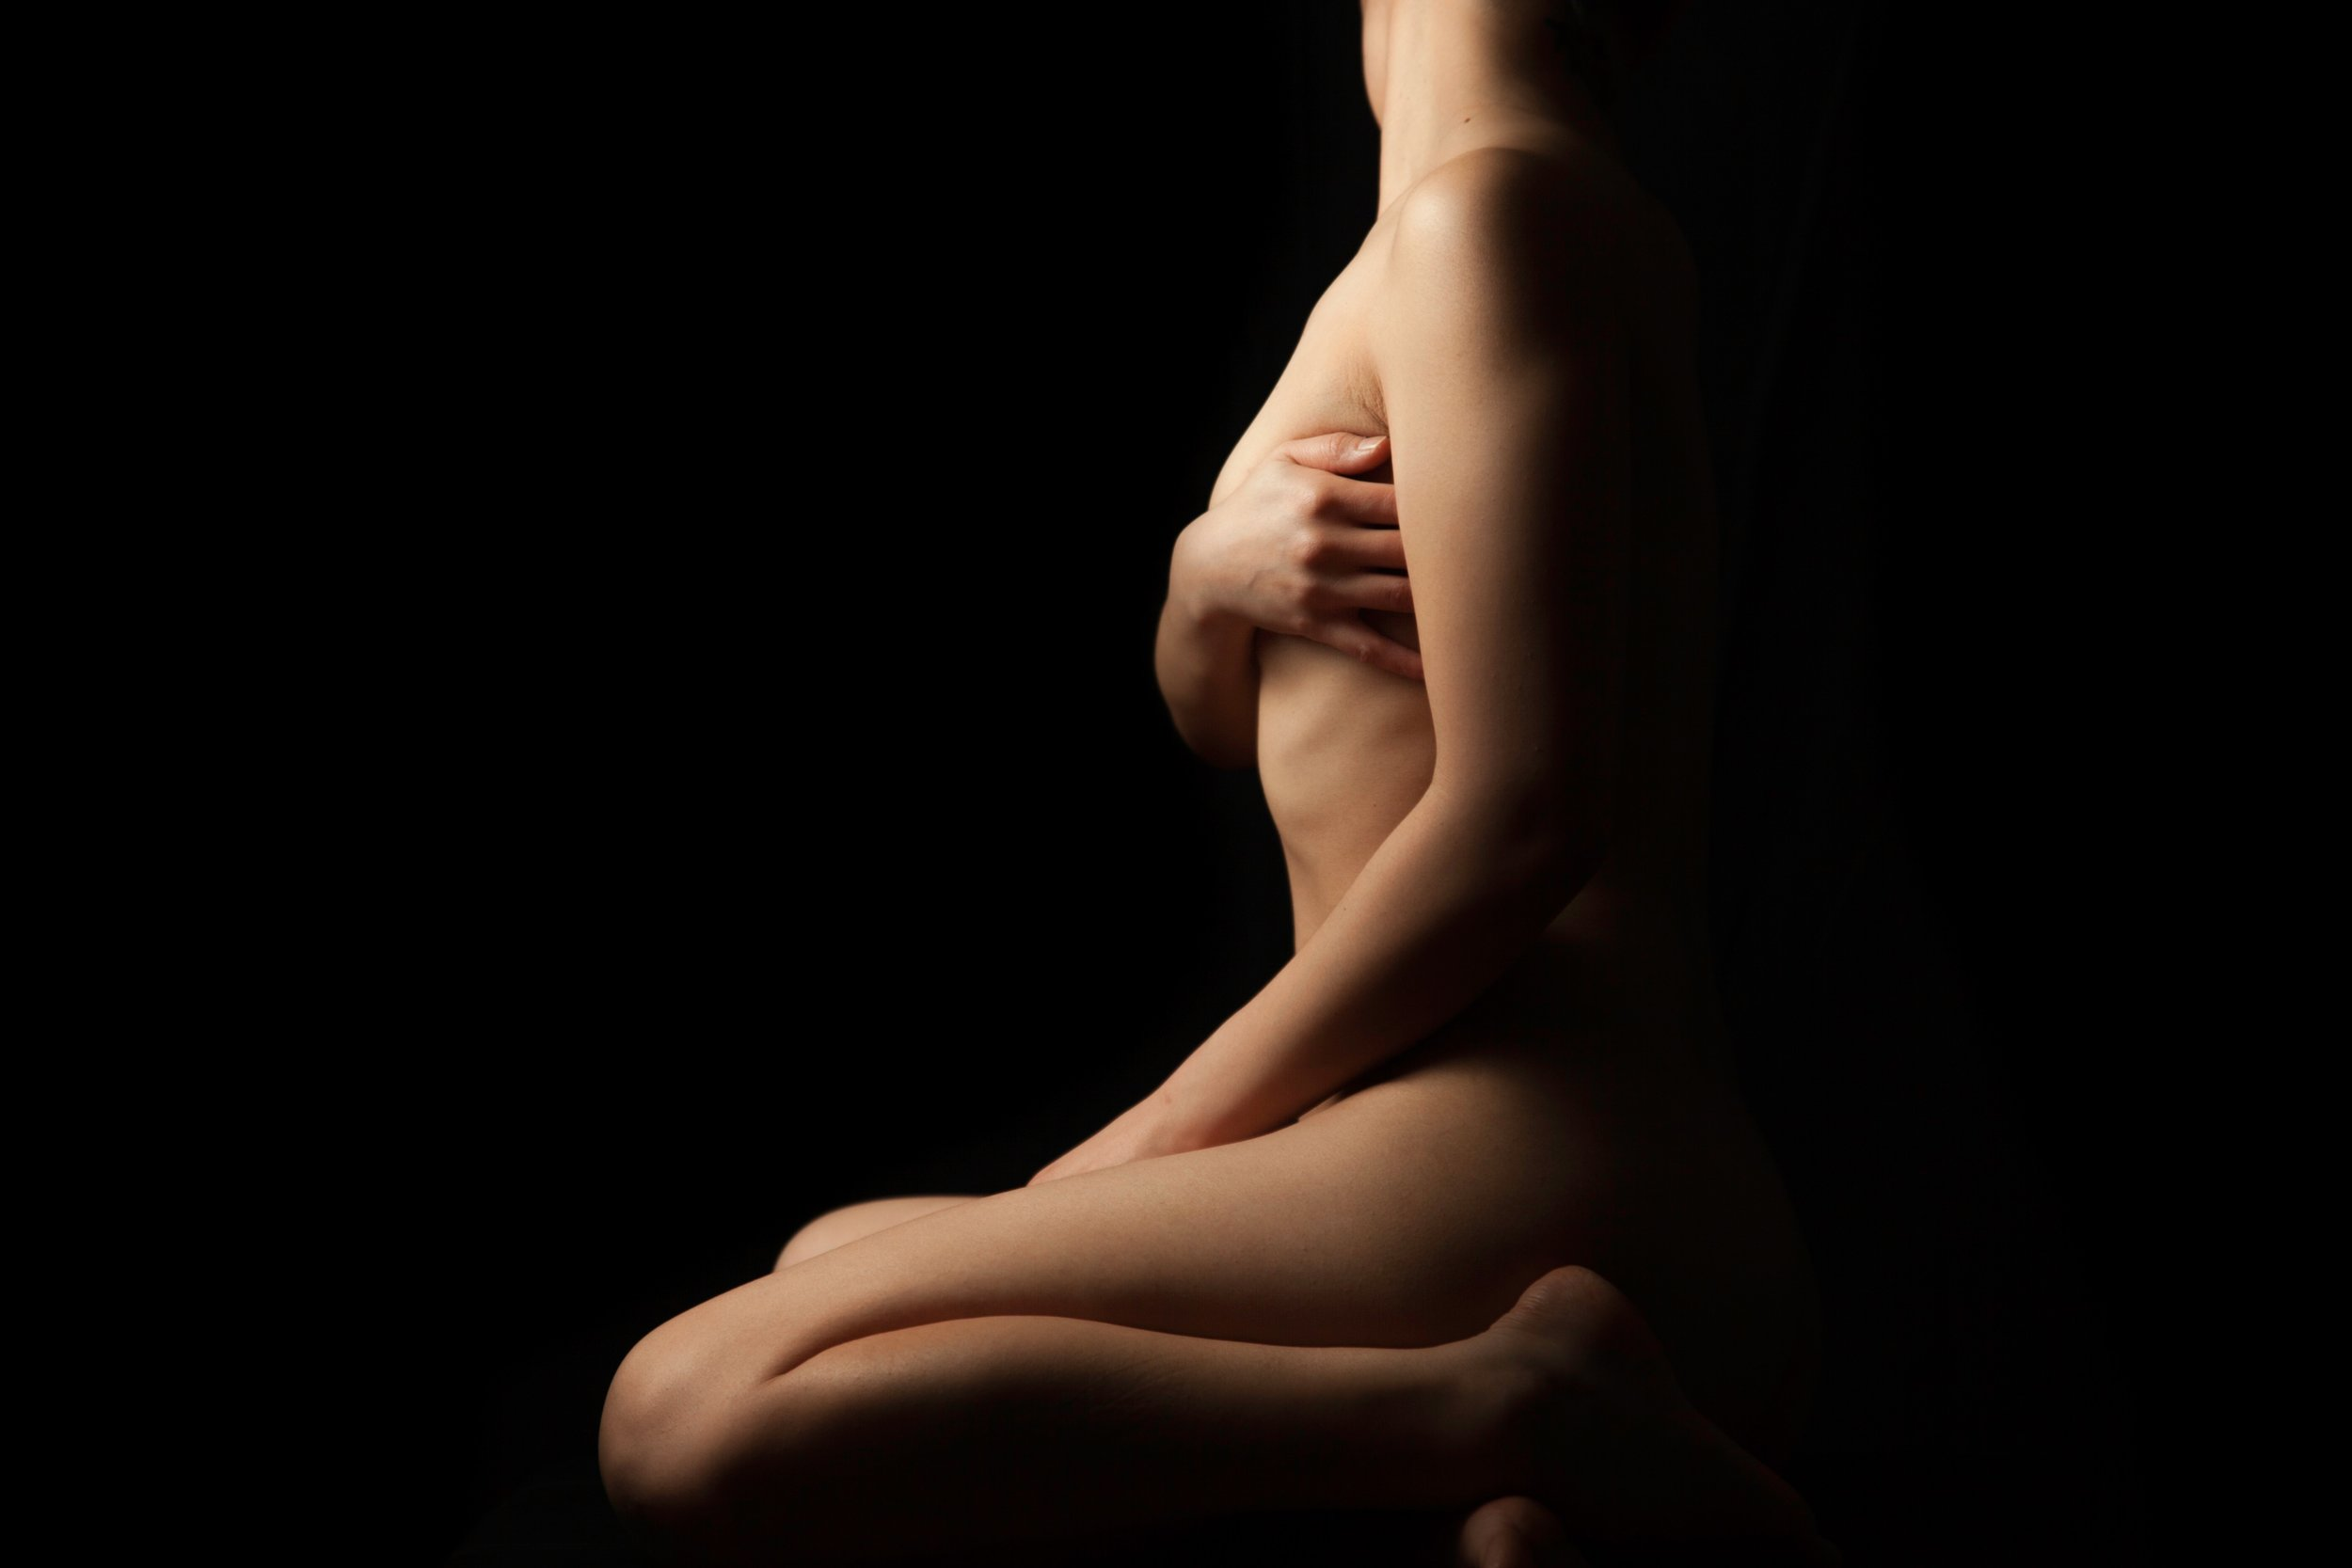 art-black-background-body-848448.jpg